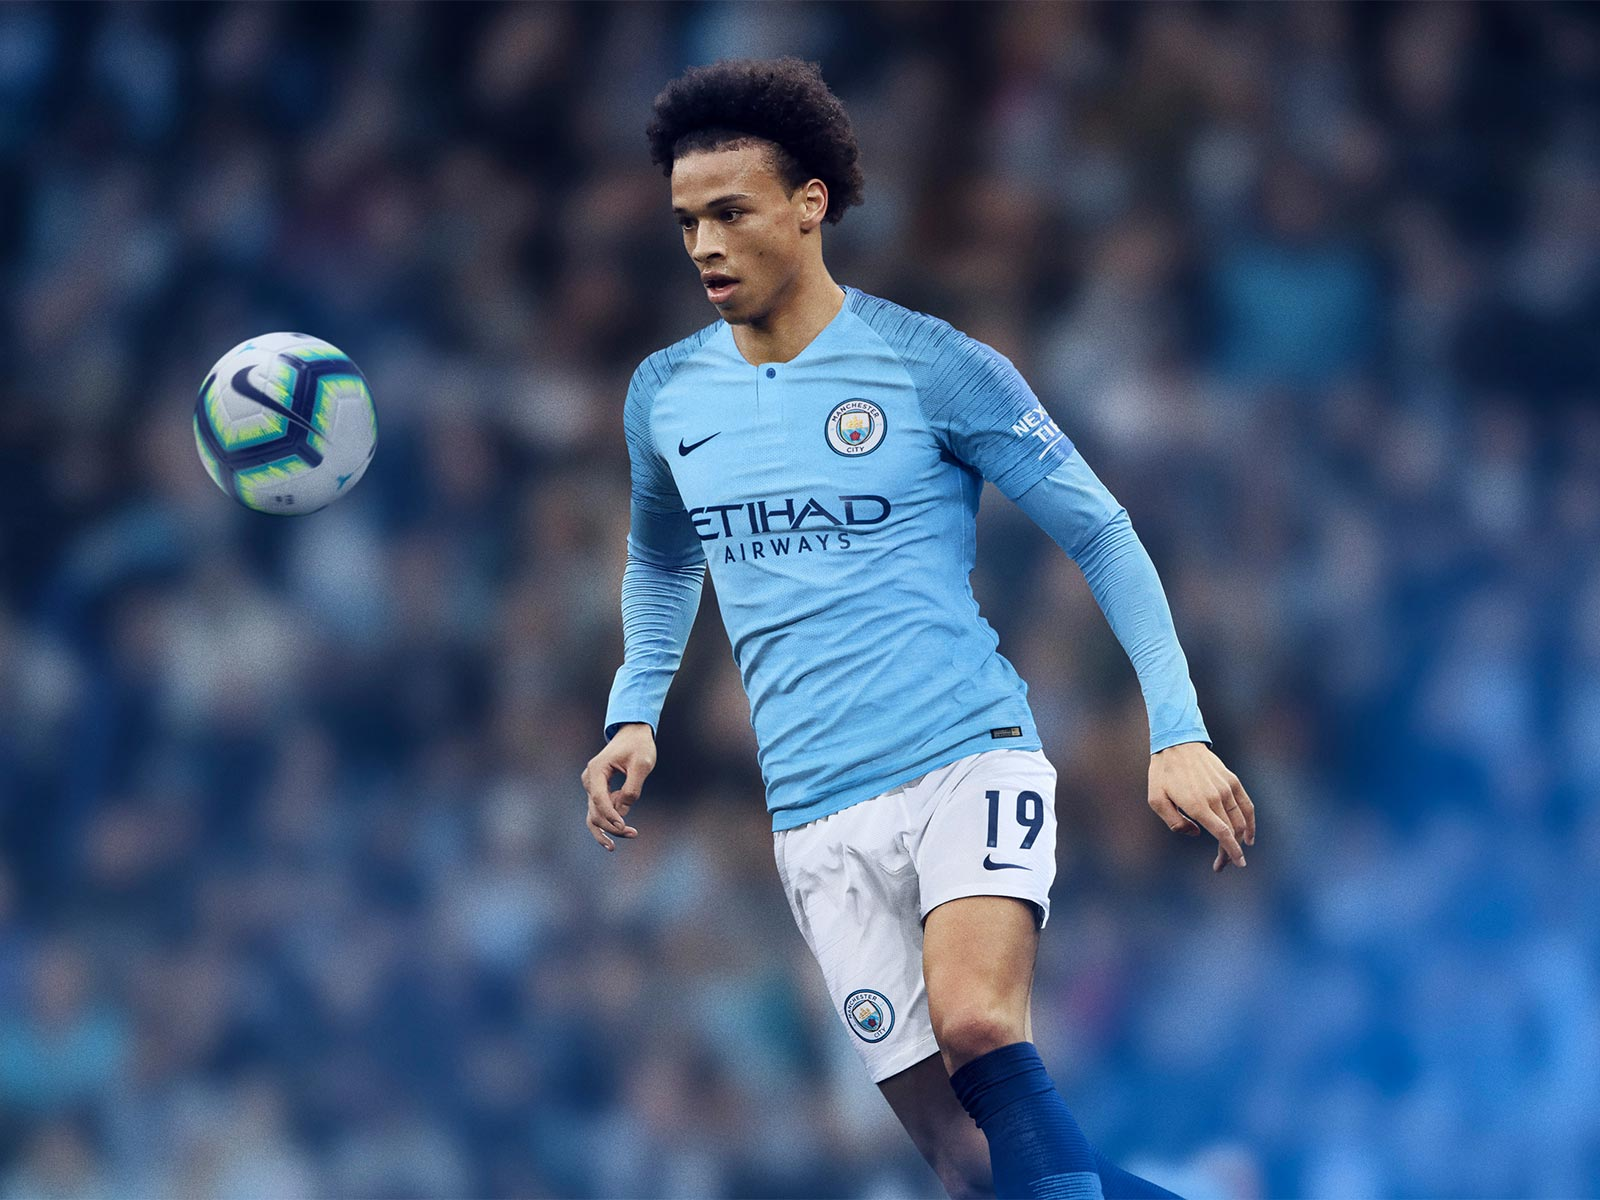 Man City: Manchester City 18-19 Home Kit Released